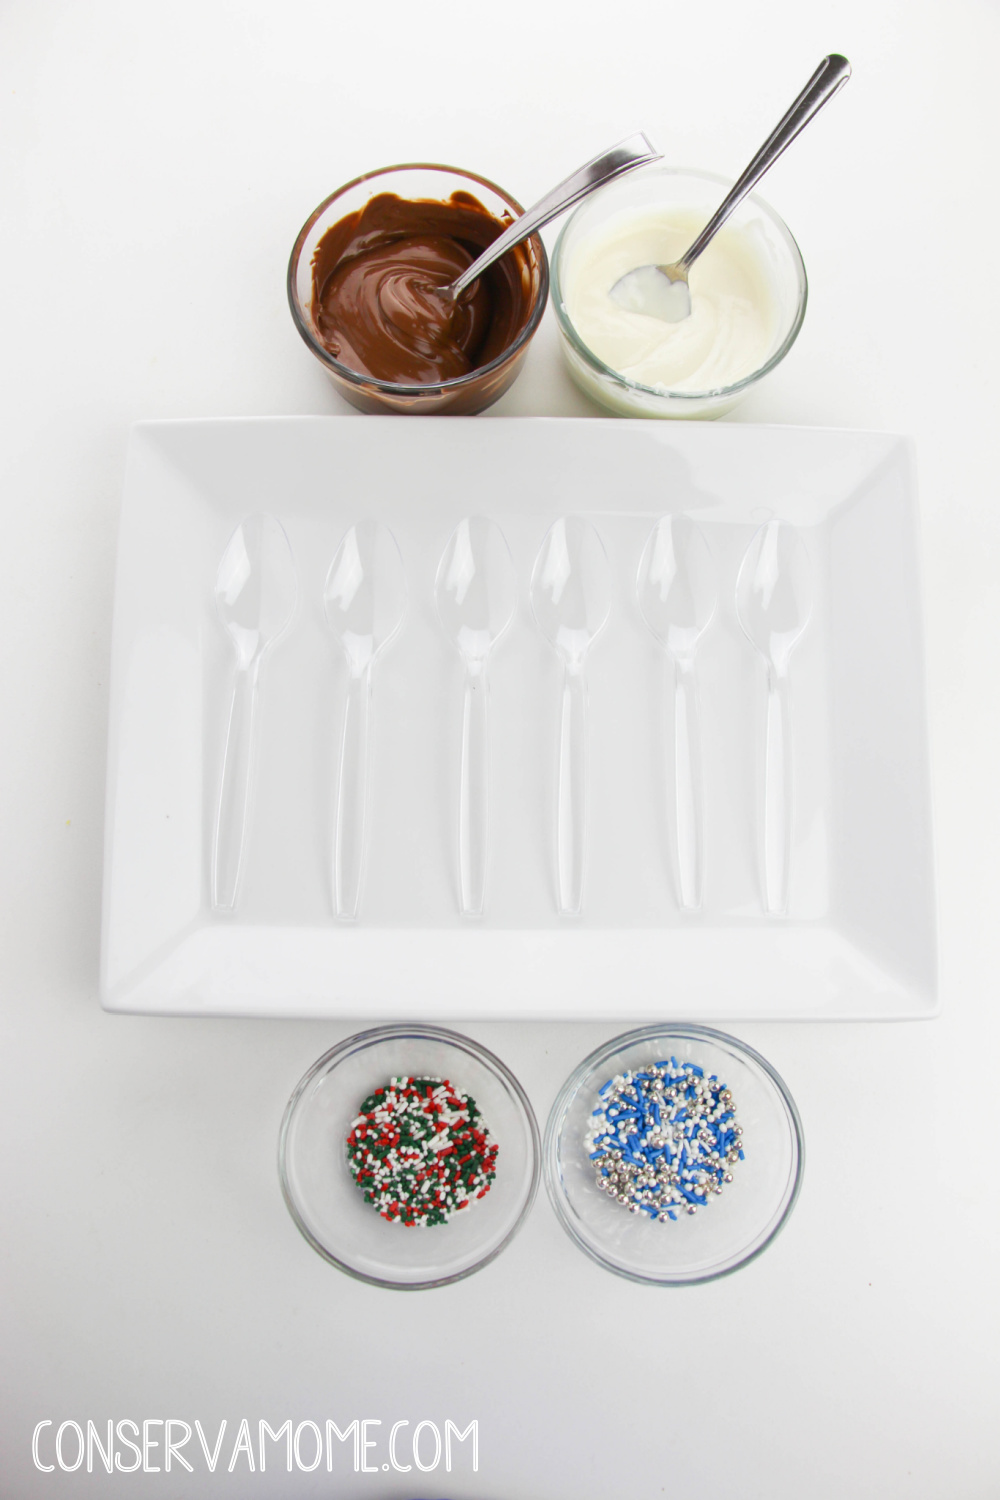 How to make Chocolate Spoons- A fun Holiday Gift Idea